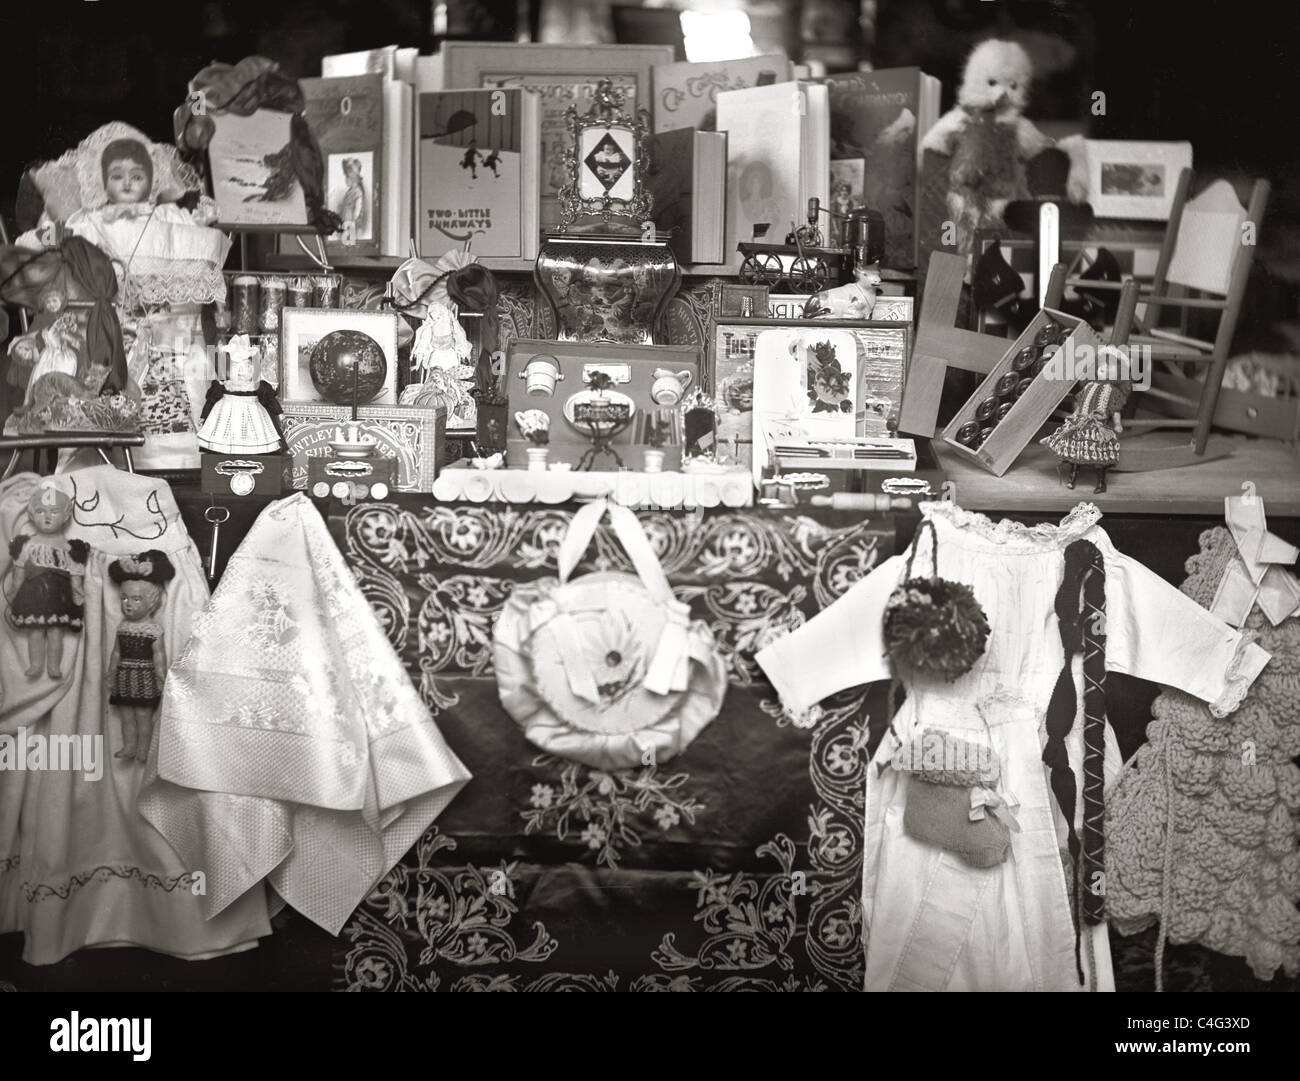 Original photograph of an Edwardian or Victorian toy shop front / window display - Stock Image